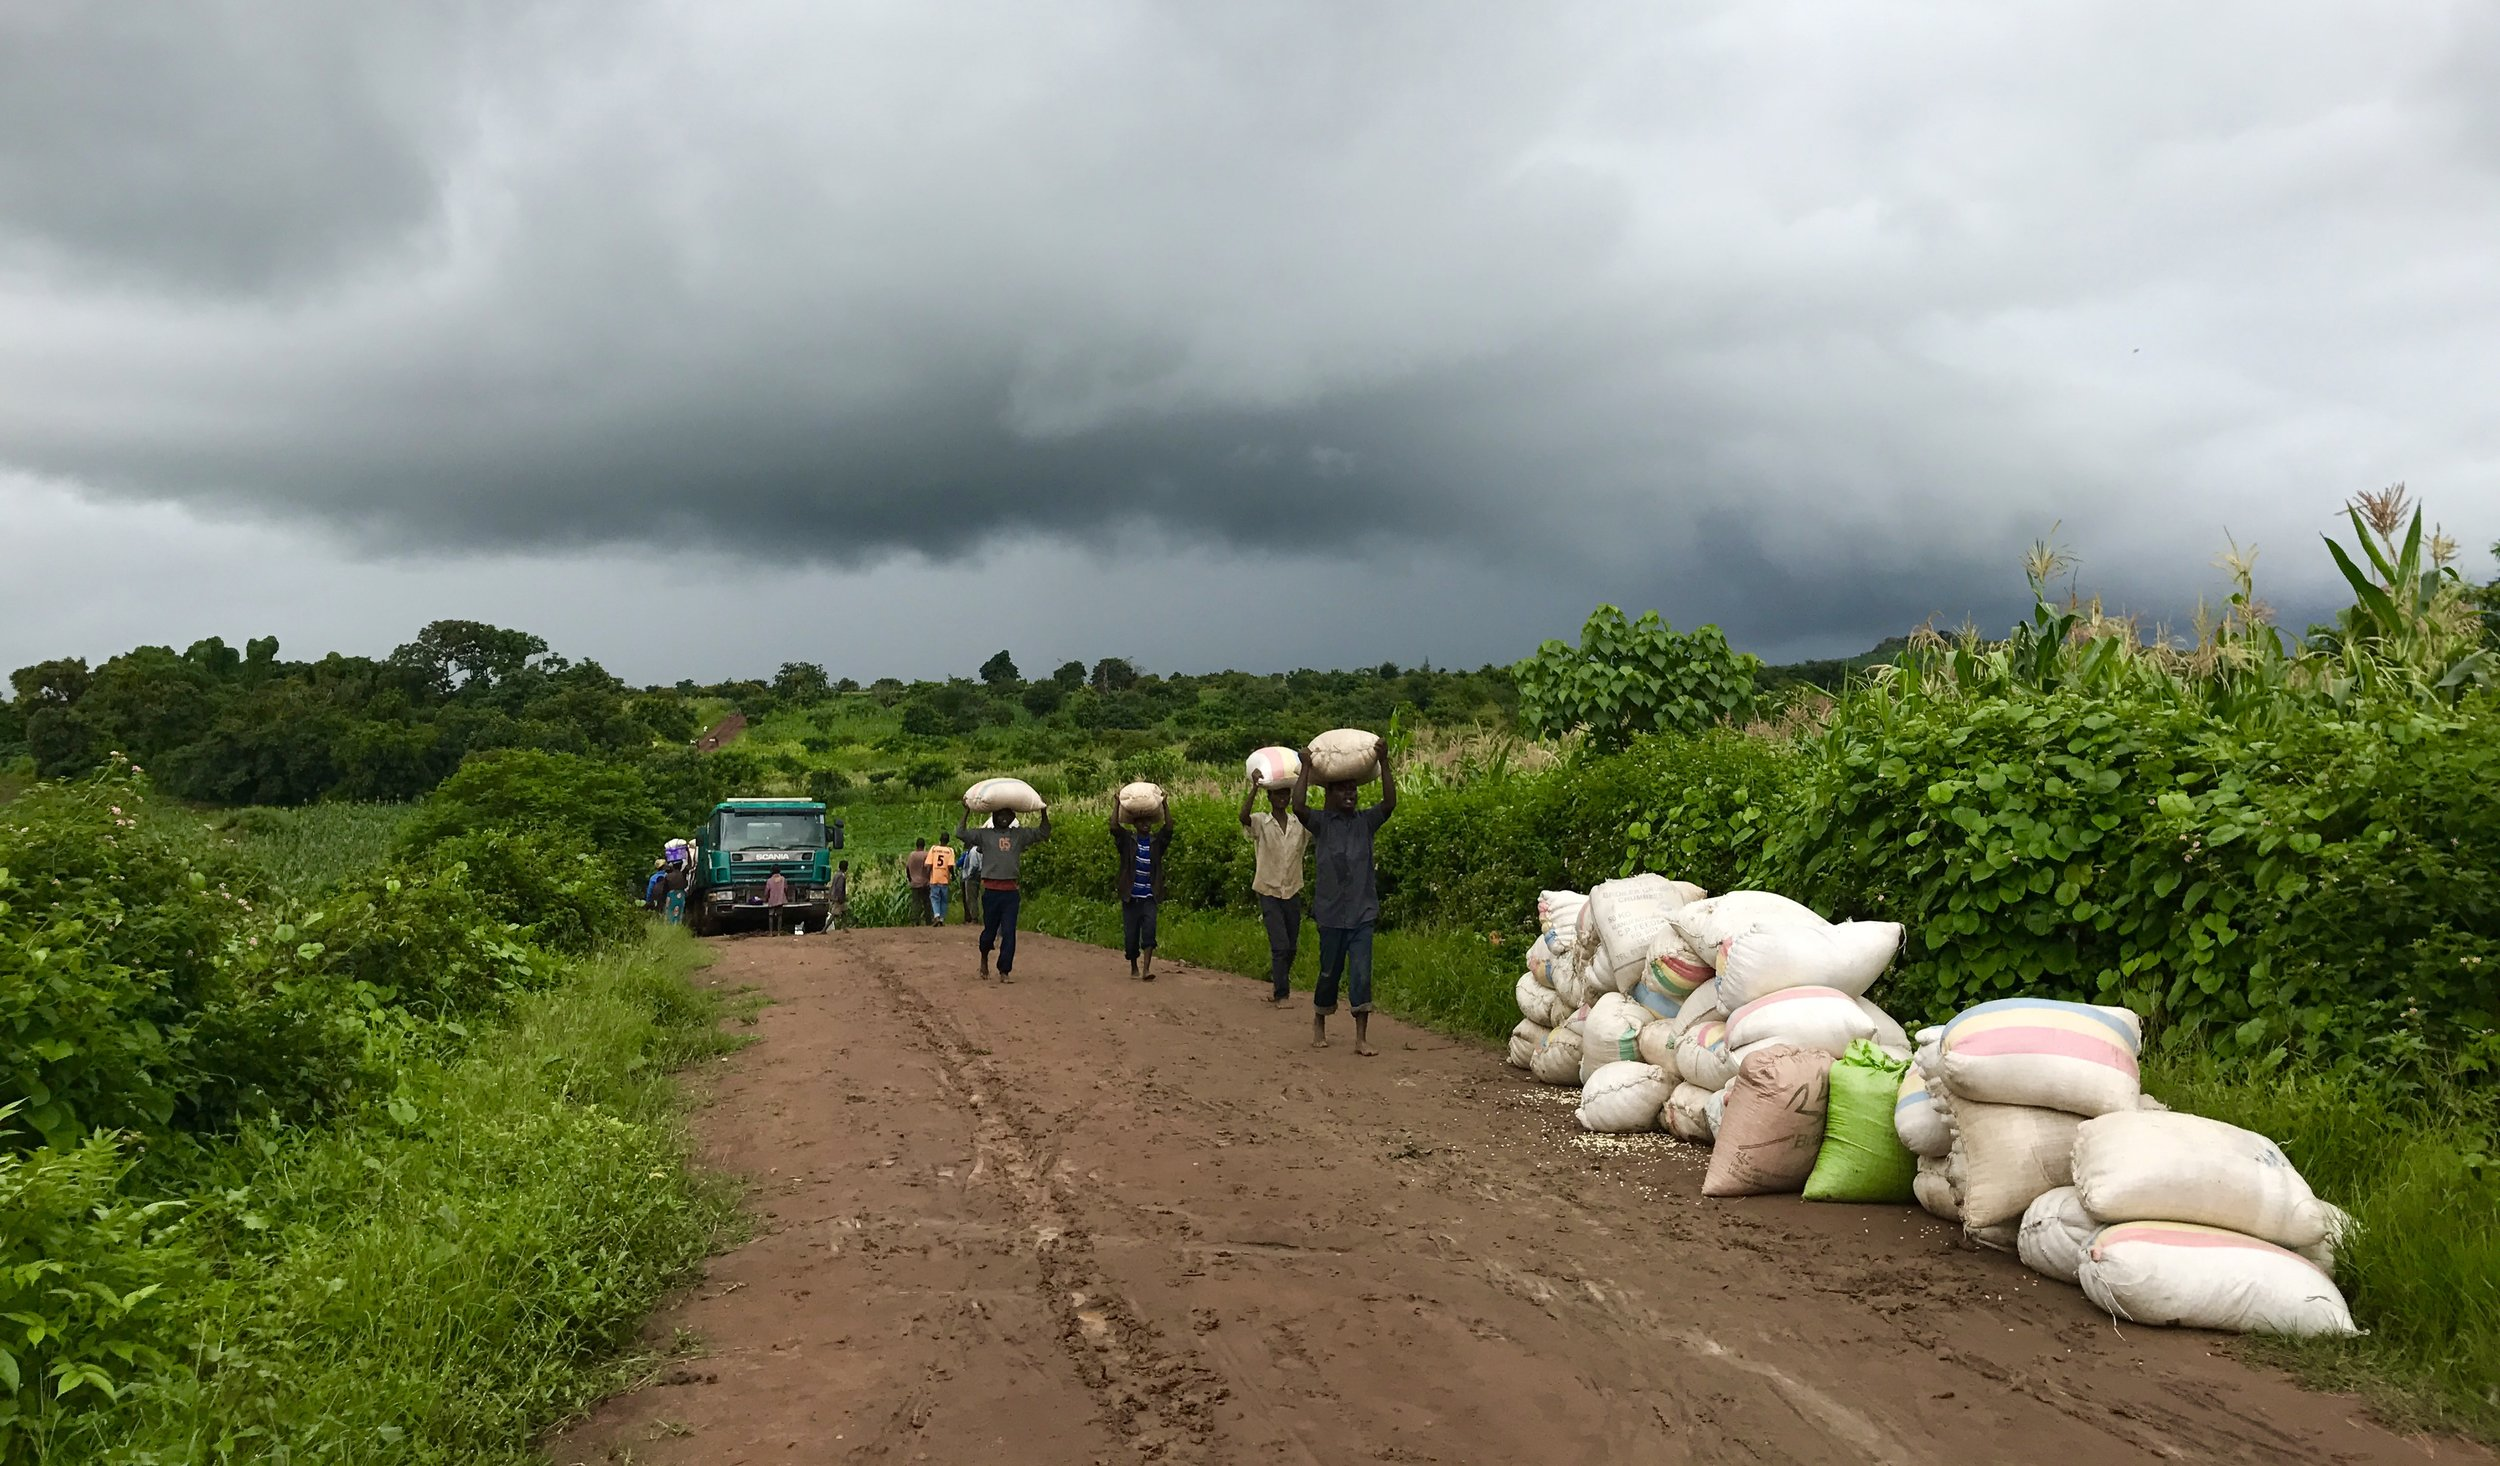 Our van was stuck on the road at this point, roughly 2km from our destination because a grain truck was stuck in the mud halfway up the hill. These men from the village came to help unload all the maize from the truck so it could be pulled up the hill with ropes.